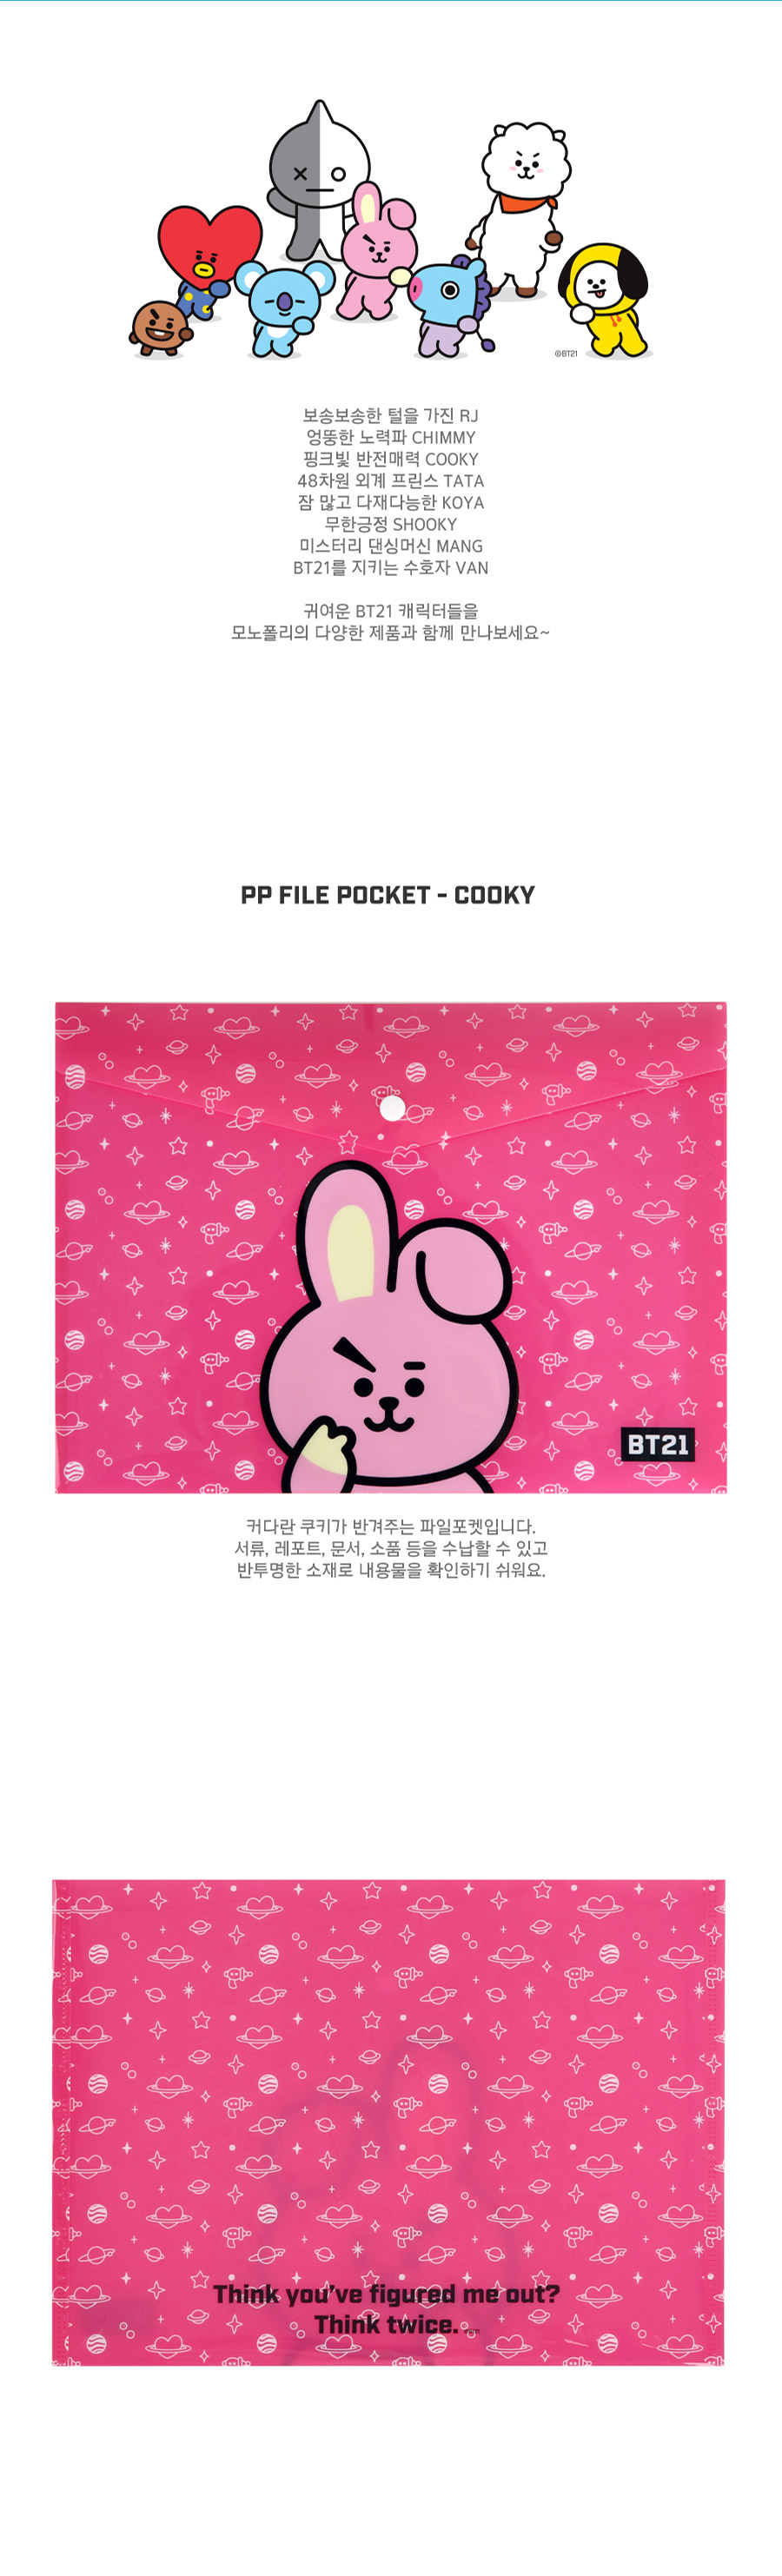 bt21_mono_ppfilepocket_01.jpg